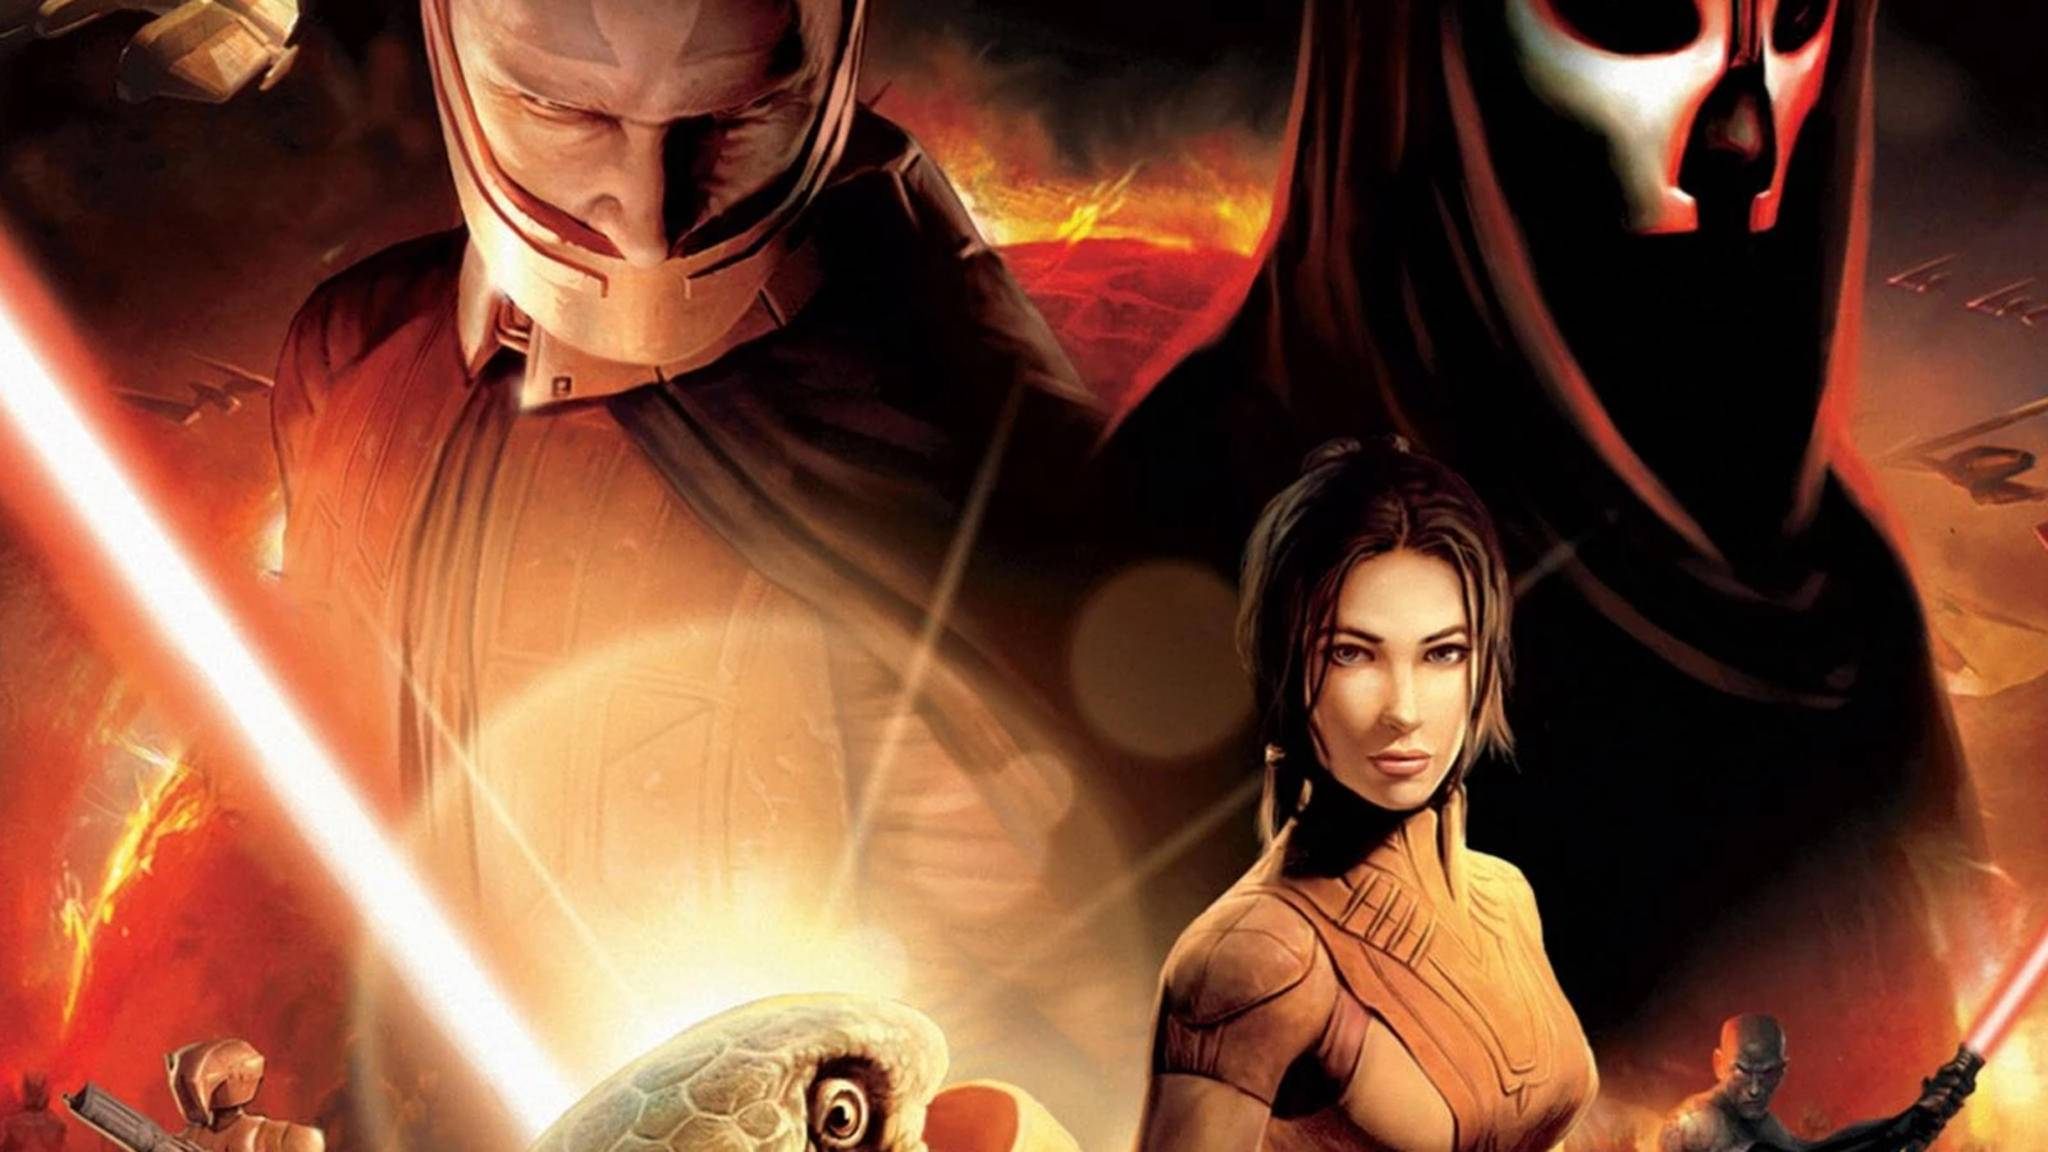 "Star Wars: Knights of the Old Republic 3"" in Arbeit?"